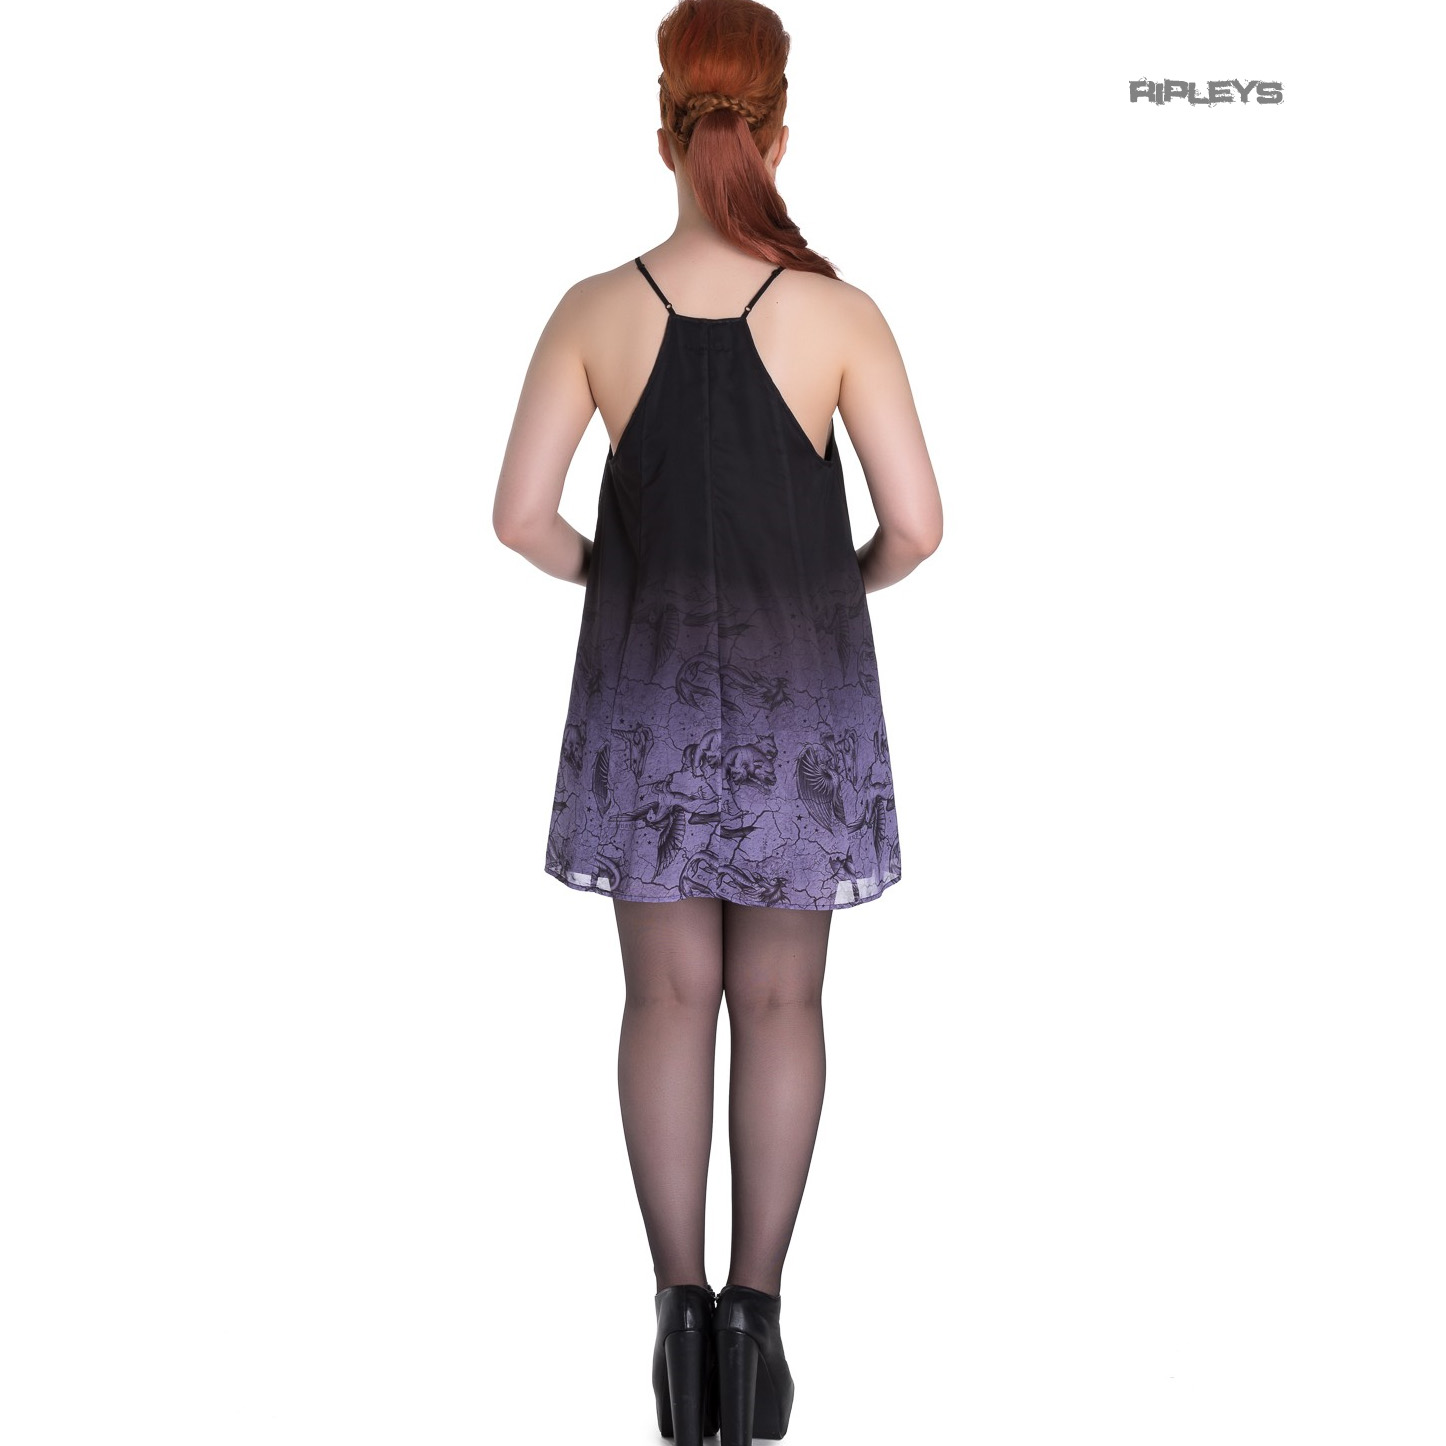 Hell-Bunny-Spin-Doctor-Goth-Lace-Up-Mini-Dress-EVADINE-Purple-Black-All-Sizes thumbnail 4